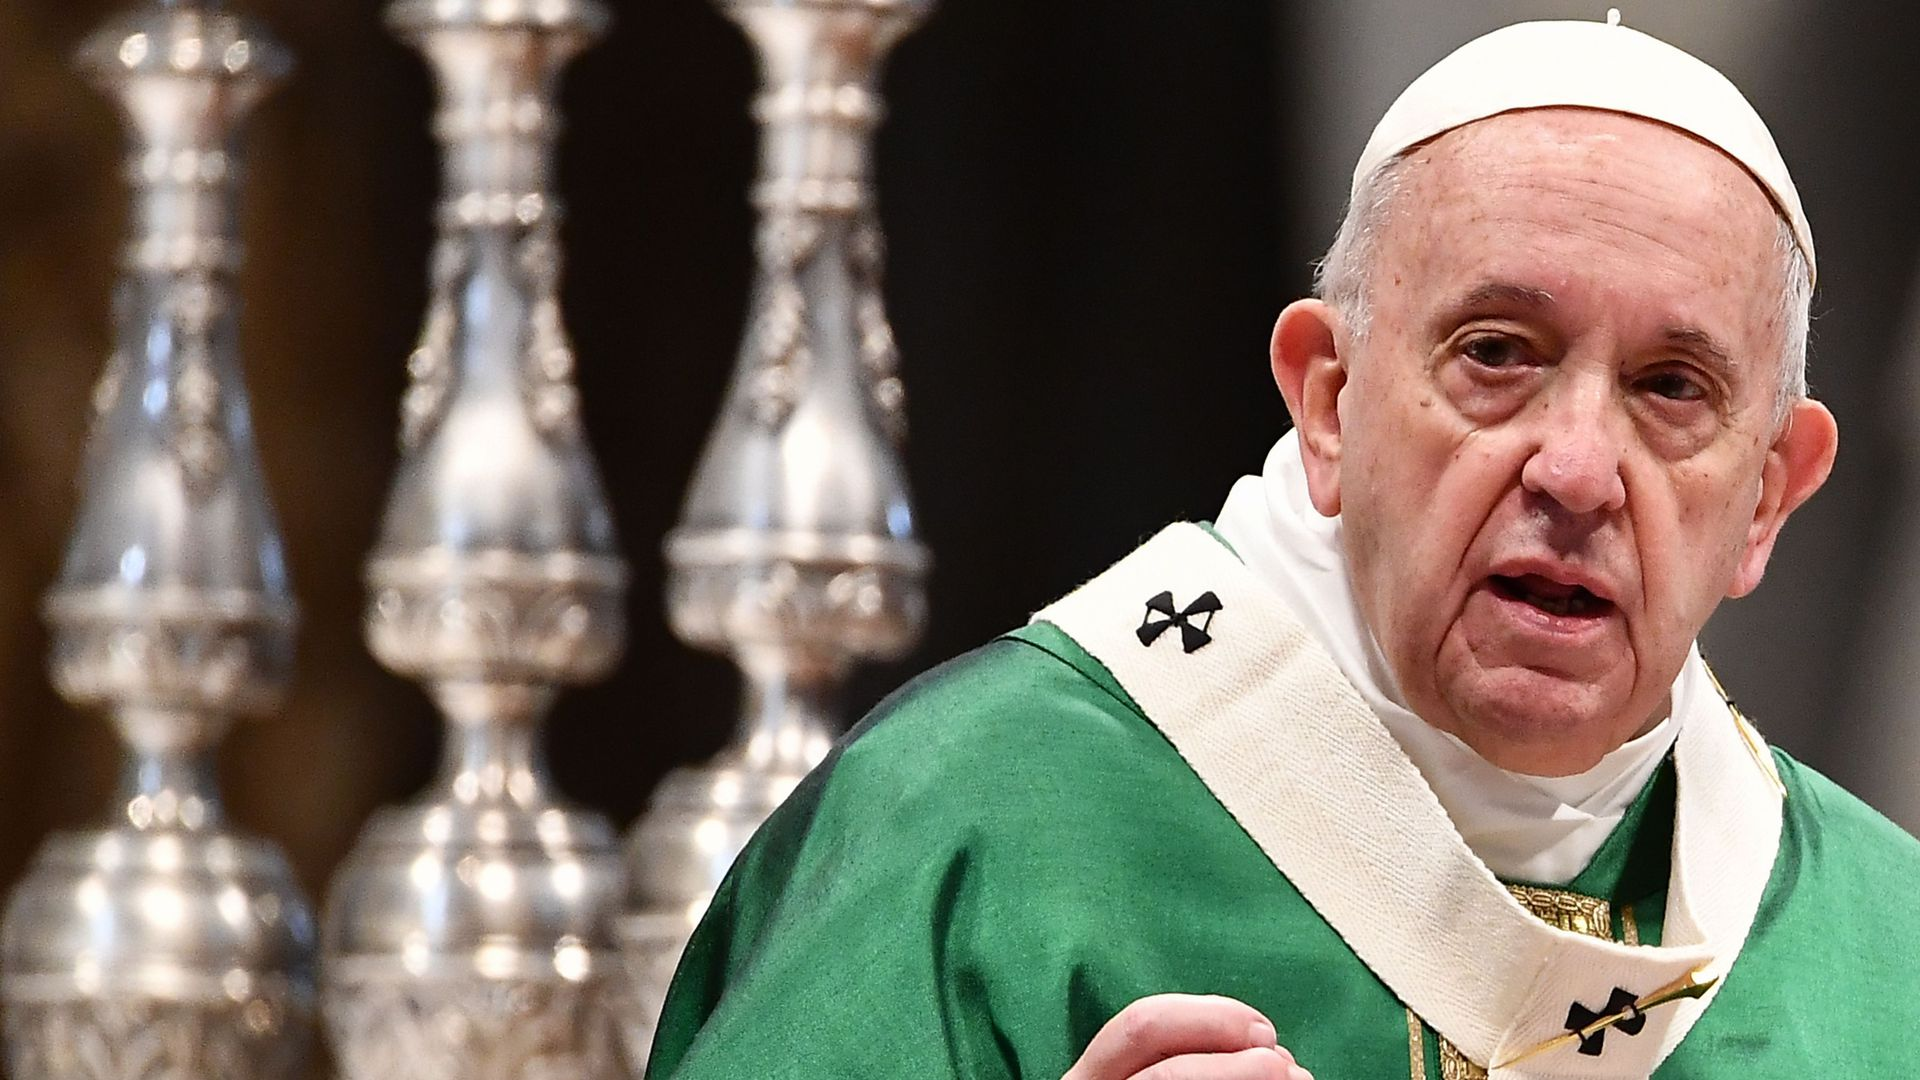 """Pope Francis urges people to vow """"never again"""" on Holocaust"""